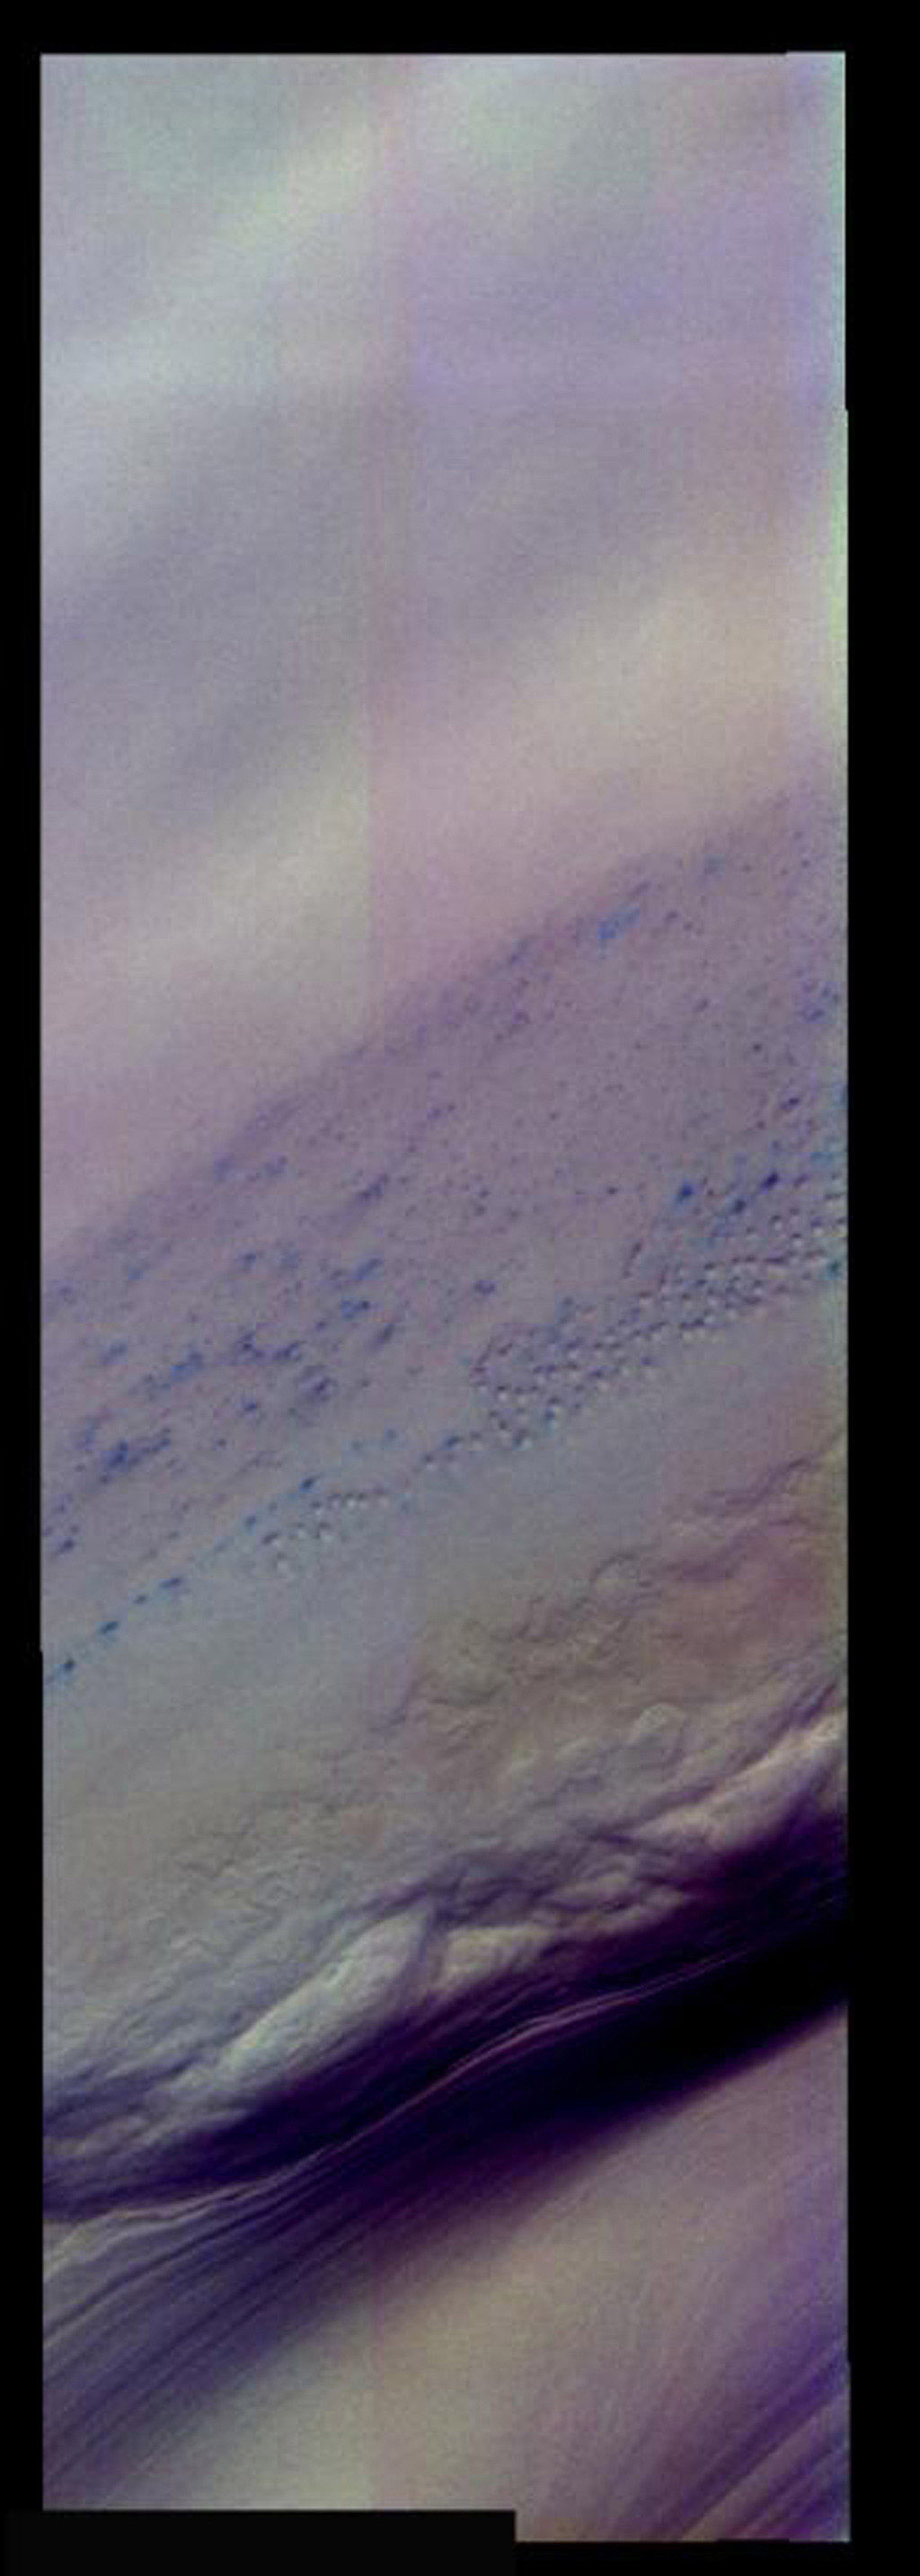 Small dunes on Mars in this false-color image from NASA's Mars Odyssey are 'bluer' than the rest of the layered ice/dust units to the left. Ice/frost will appear as bright blue in color; dust mantled ice will appear in tones of red/orange.